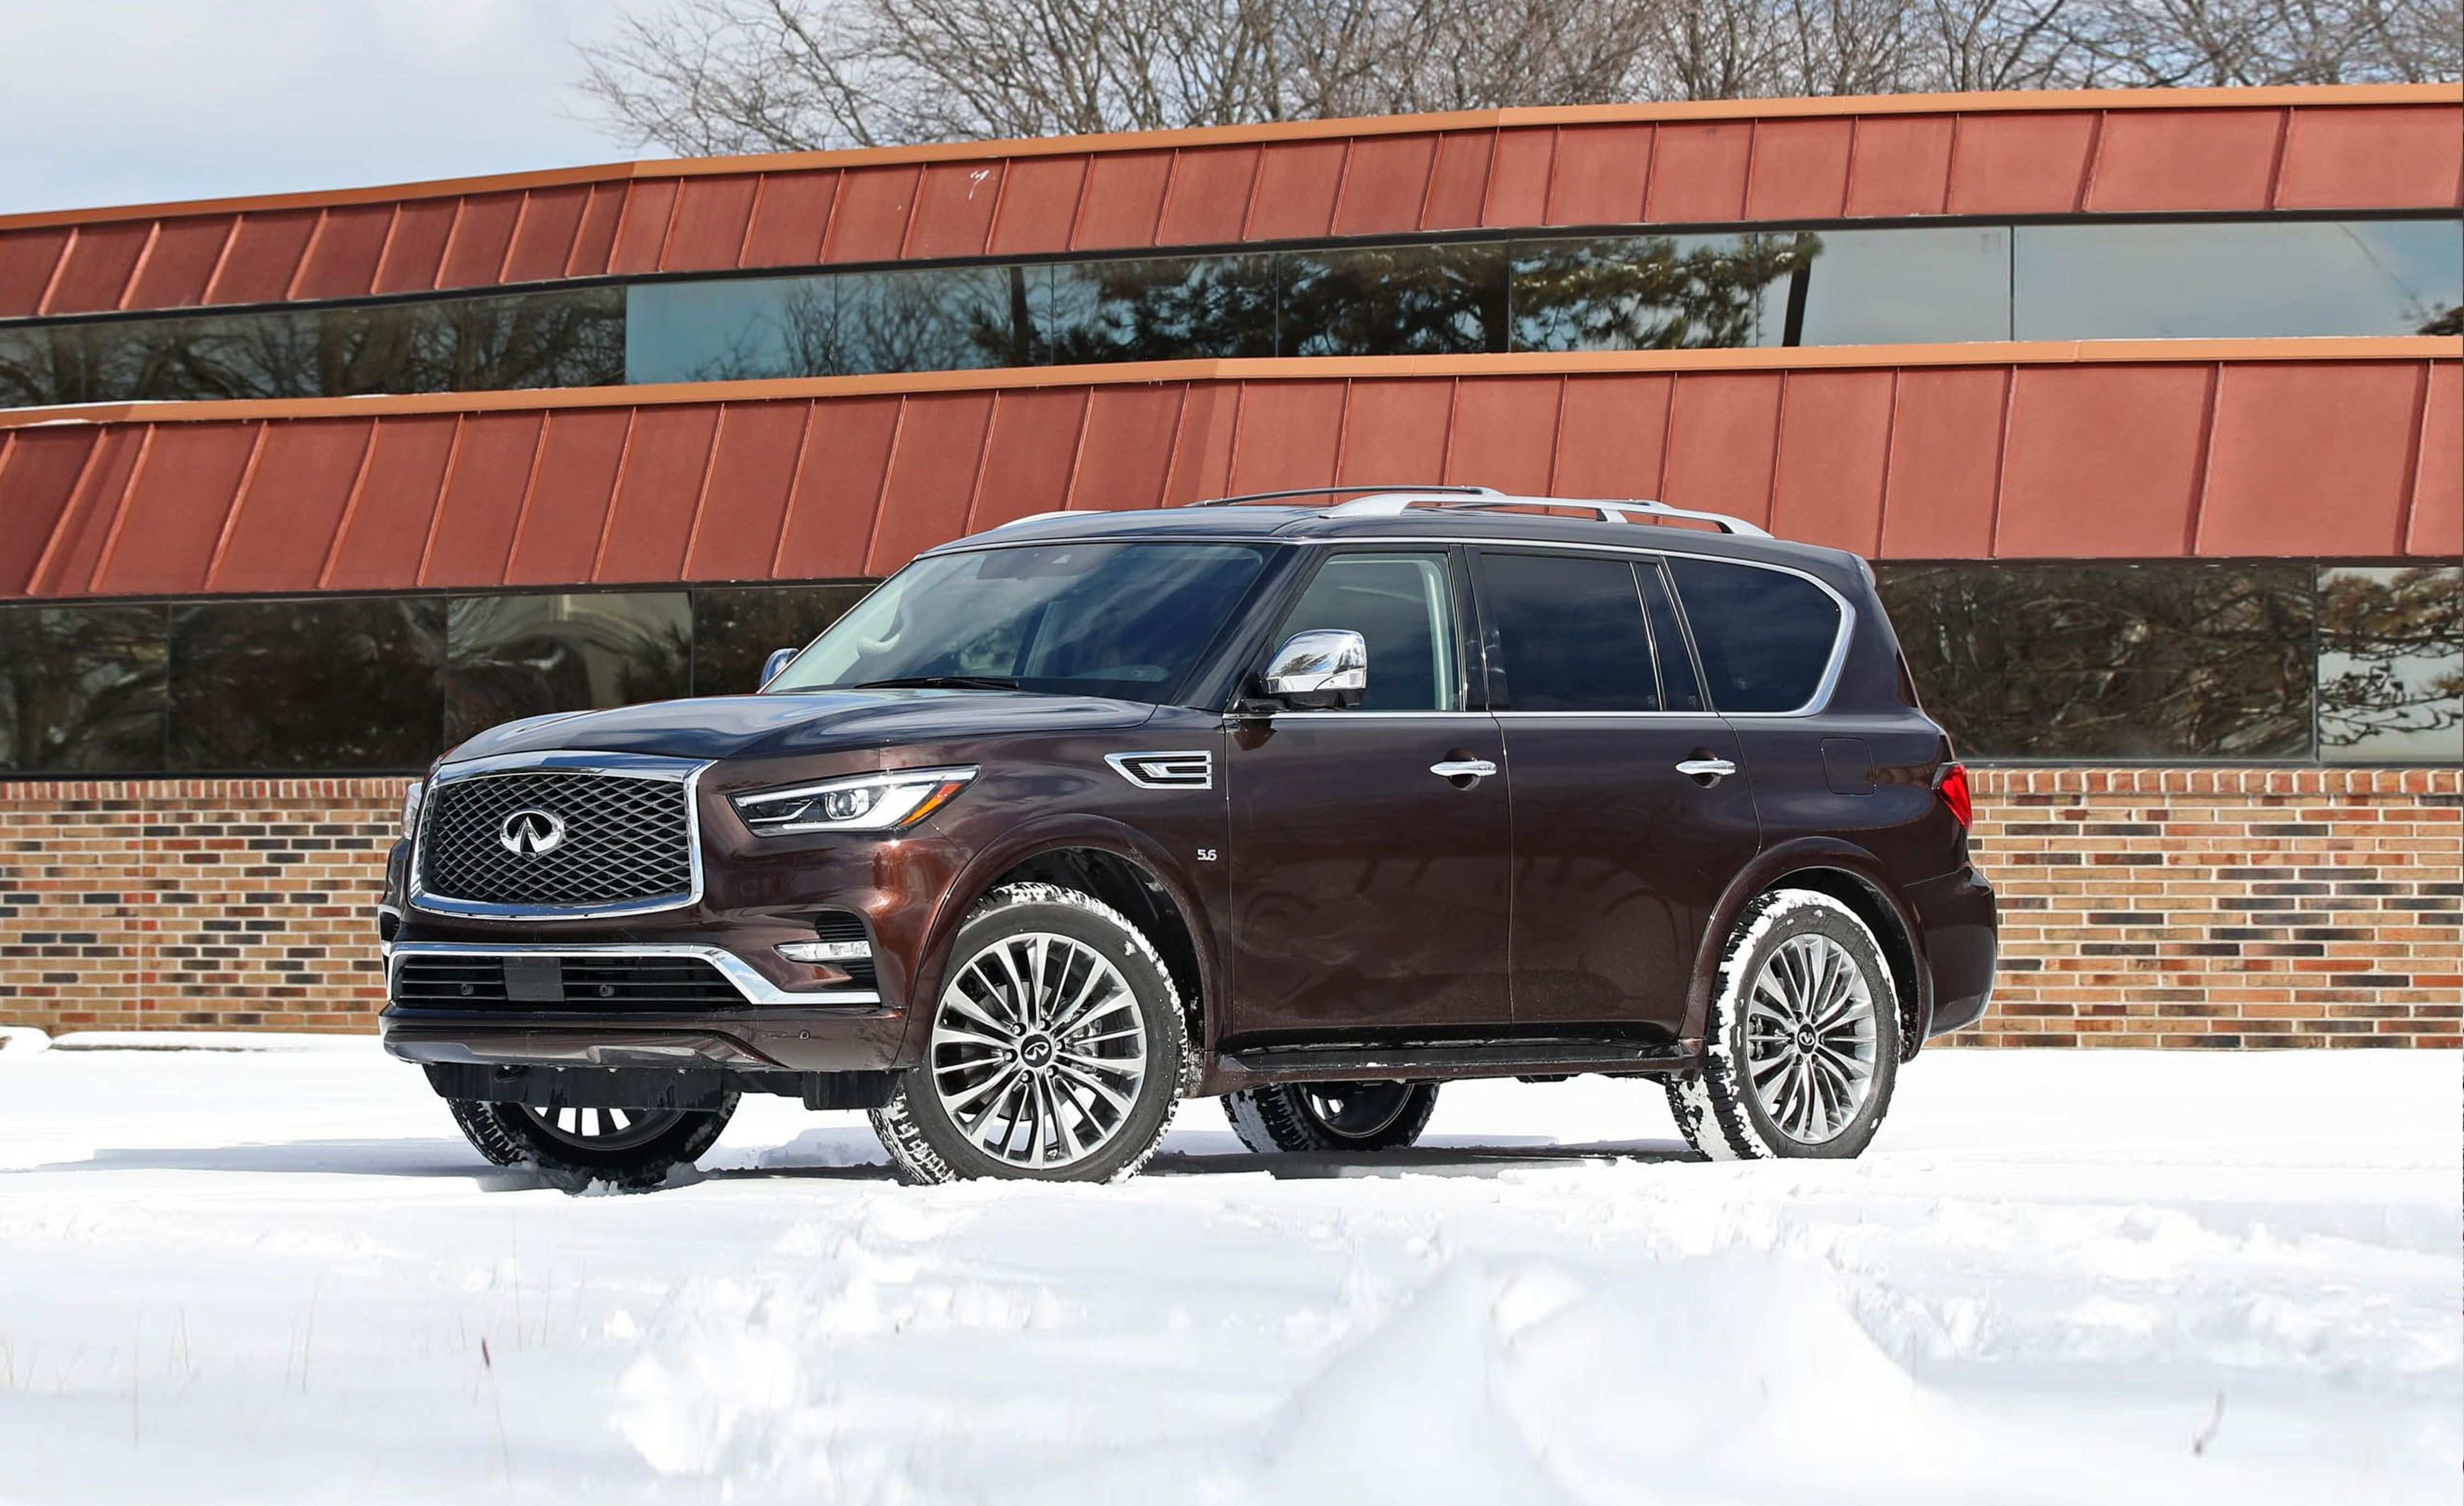 27 Best Review Best 2019 Infiniti Qx80 Price Performance Wallpaper by Best 2019 Infiniti Qx80 Price Performance